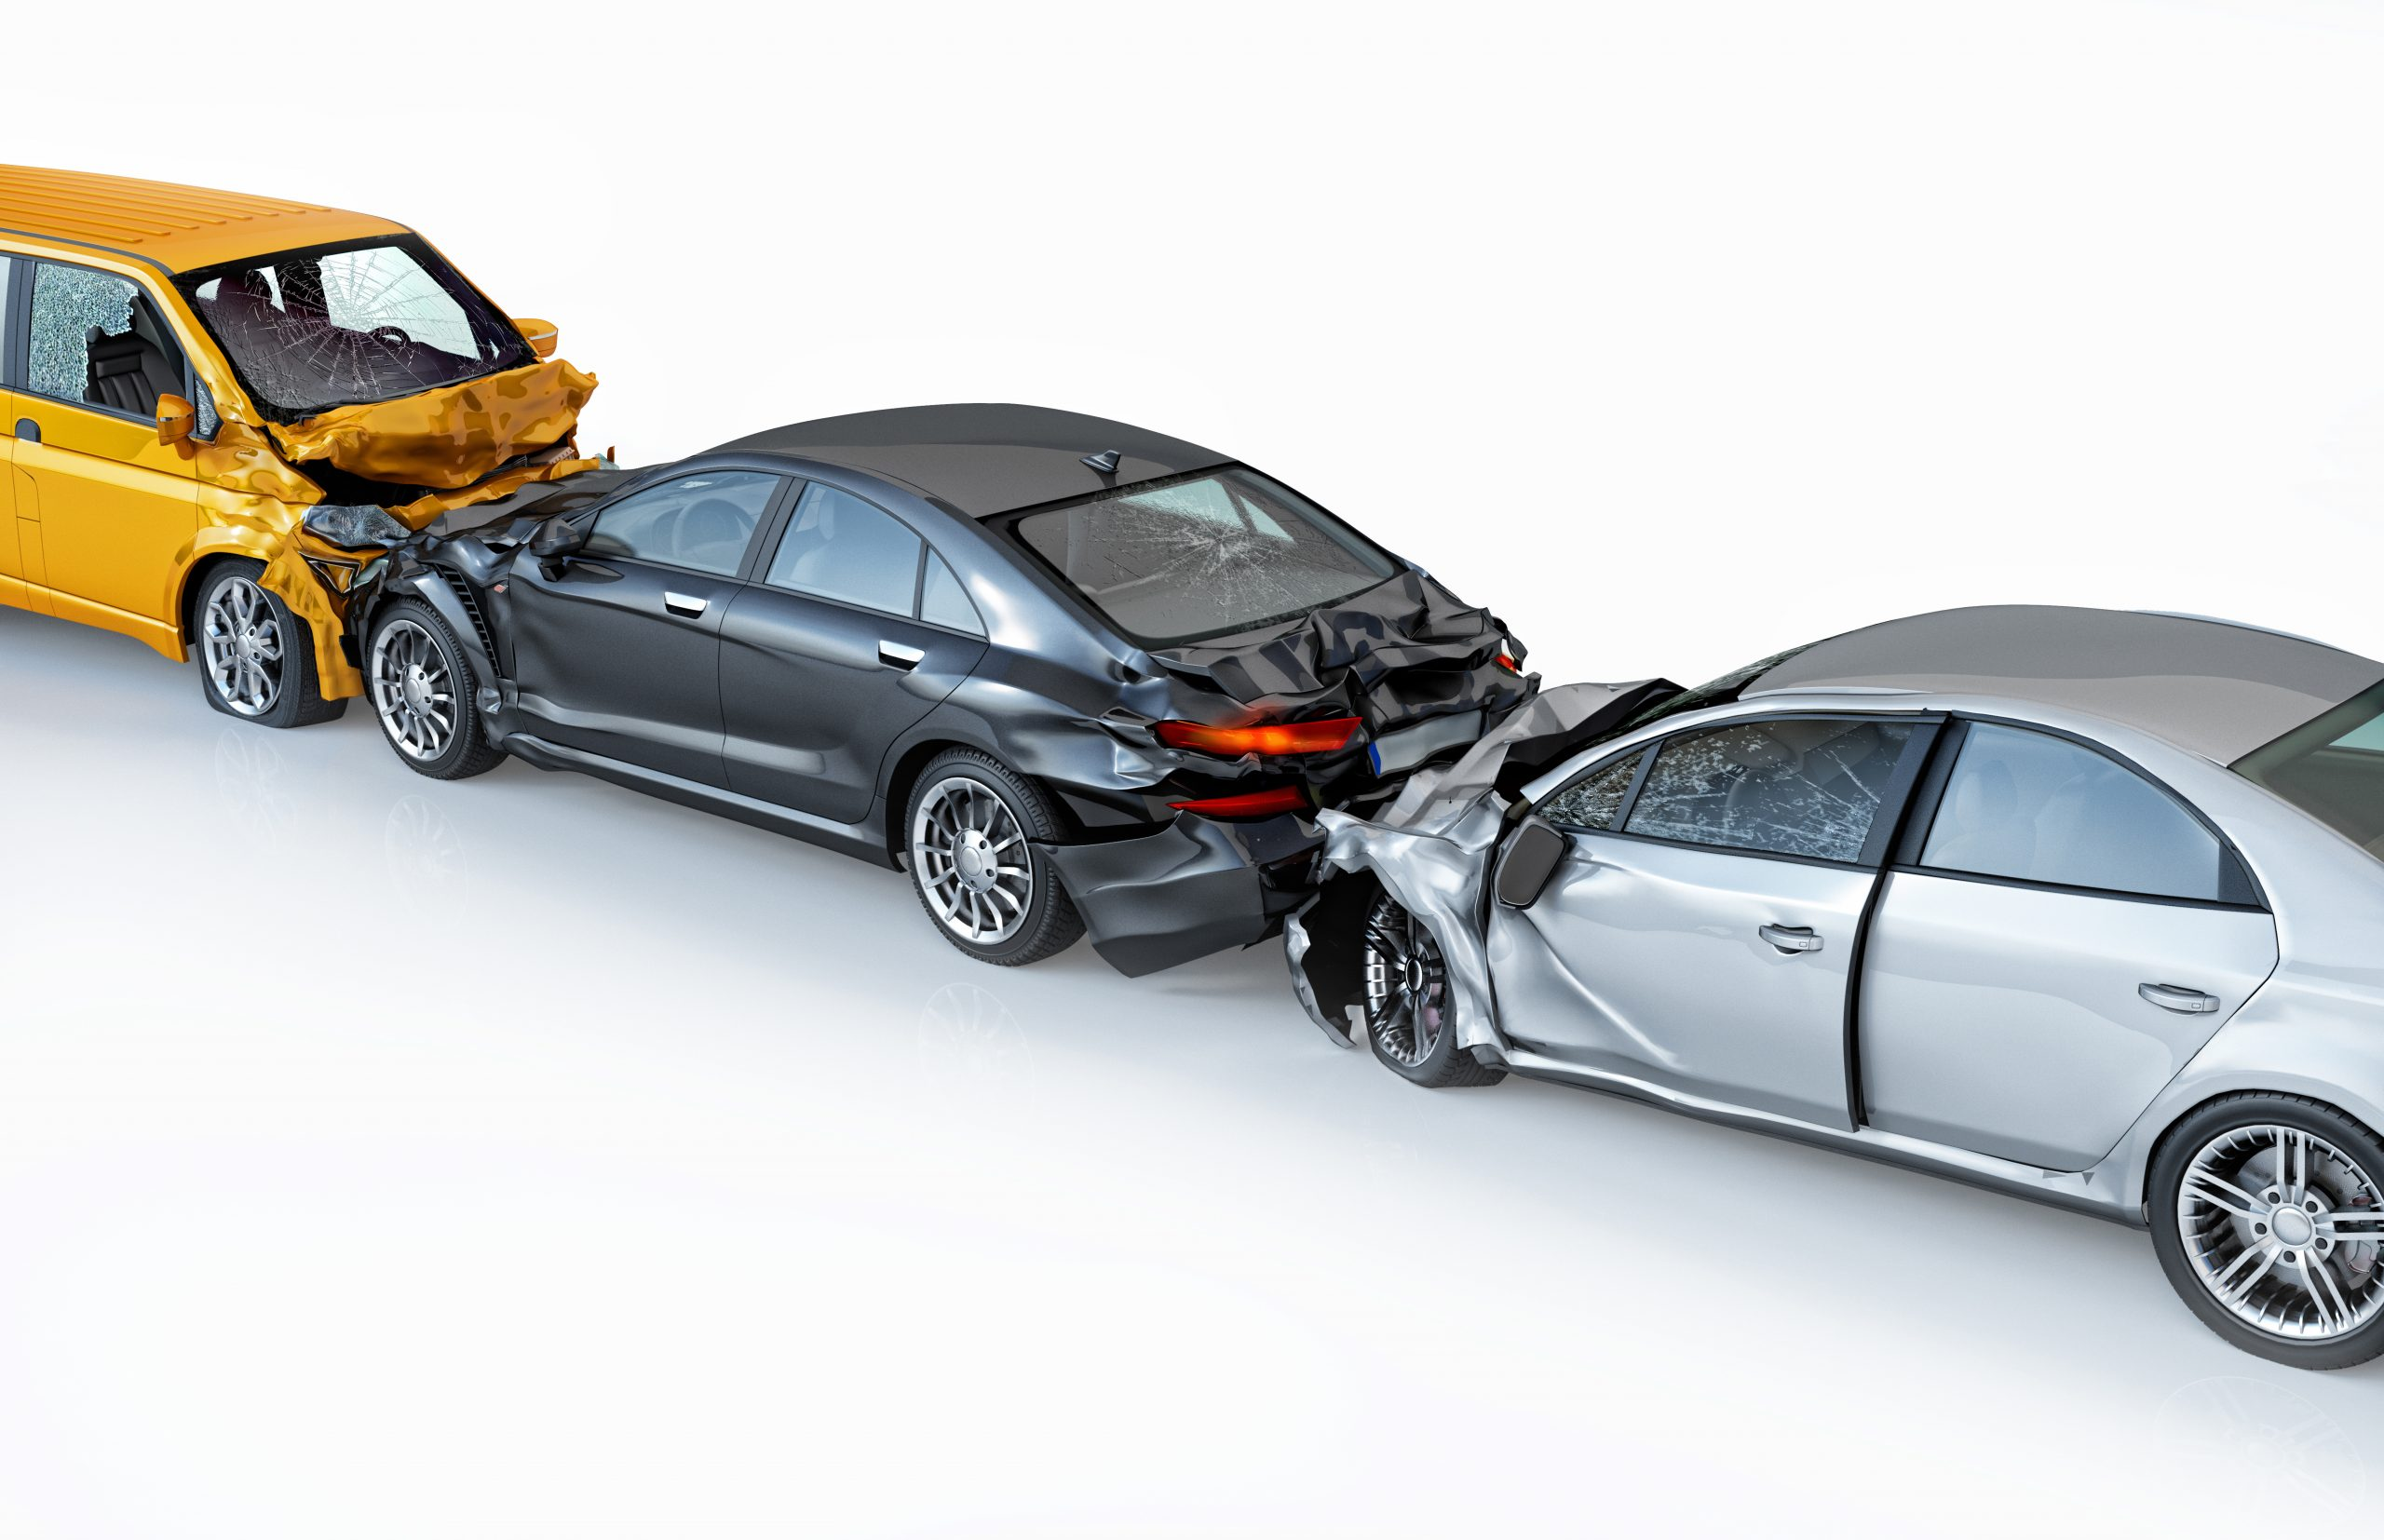 Who Is At Fault in a Rear End Collision Involving 3 Cars?